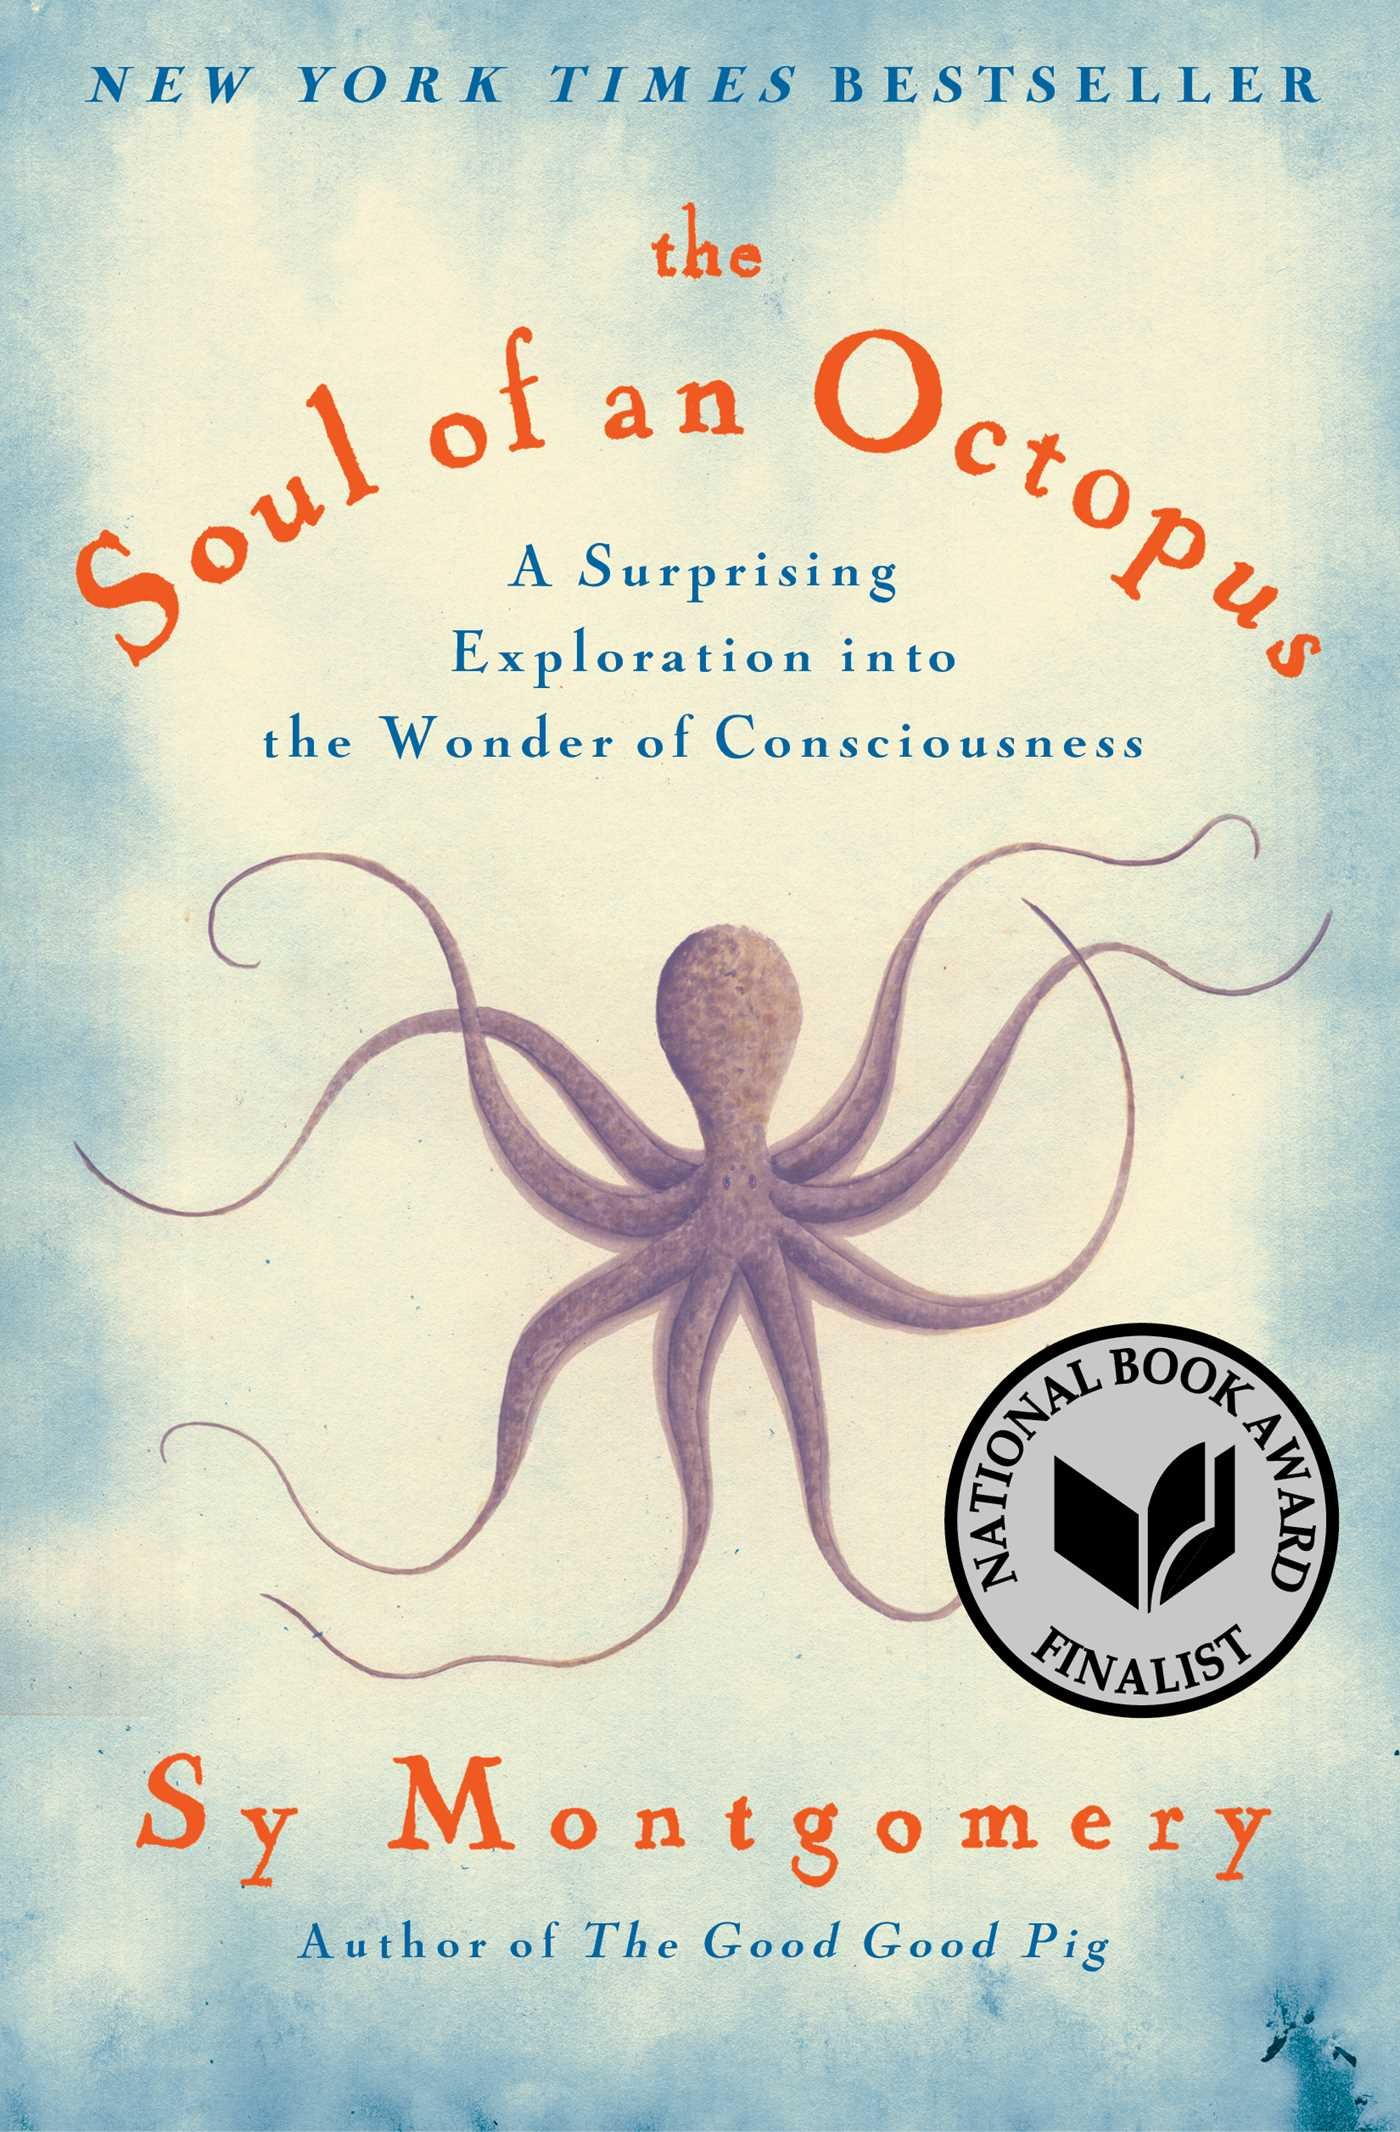 The Soul of an Octopus by Sy Montgomery - An entertaining exploration of the emotional and physical world of the octopus